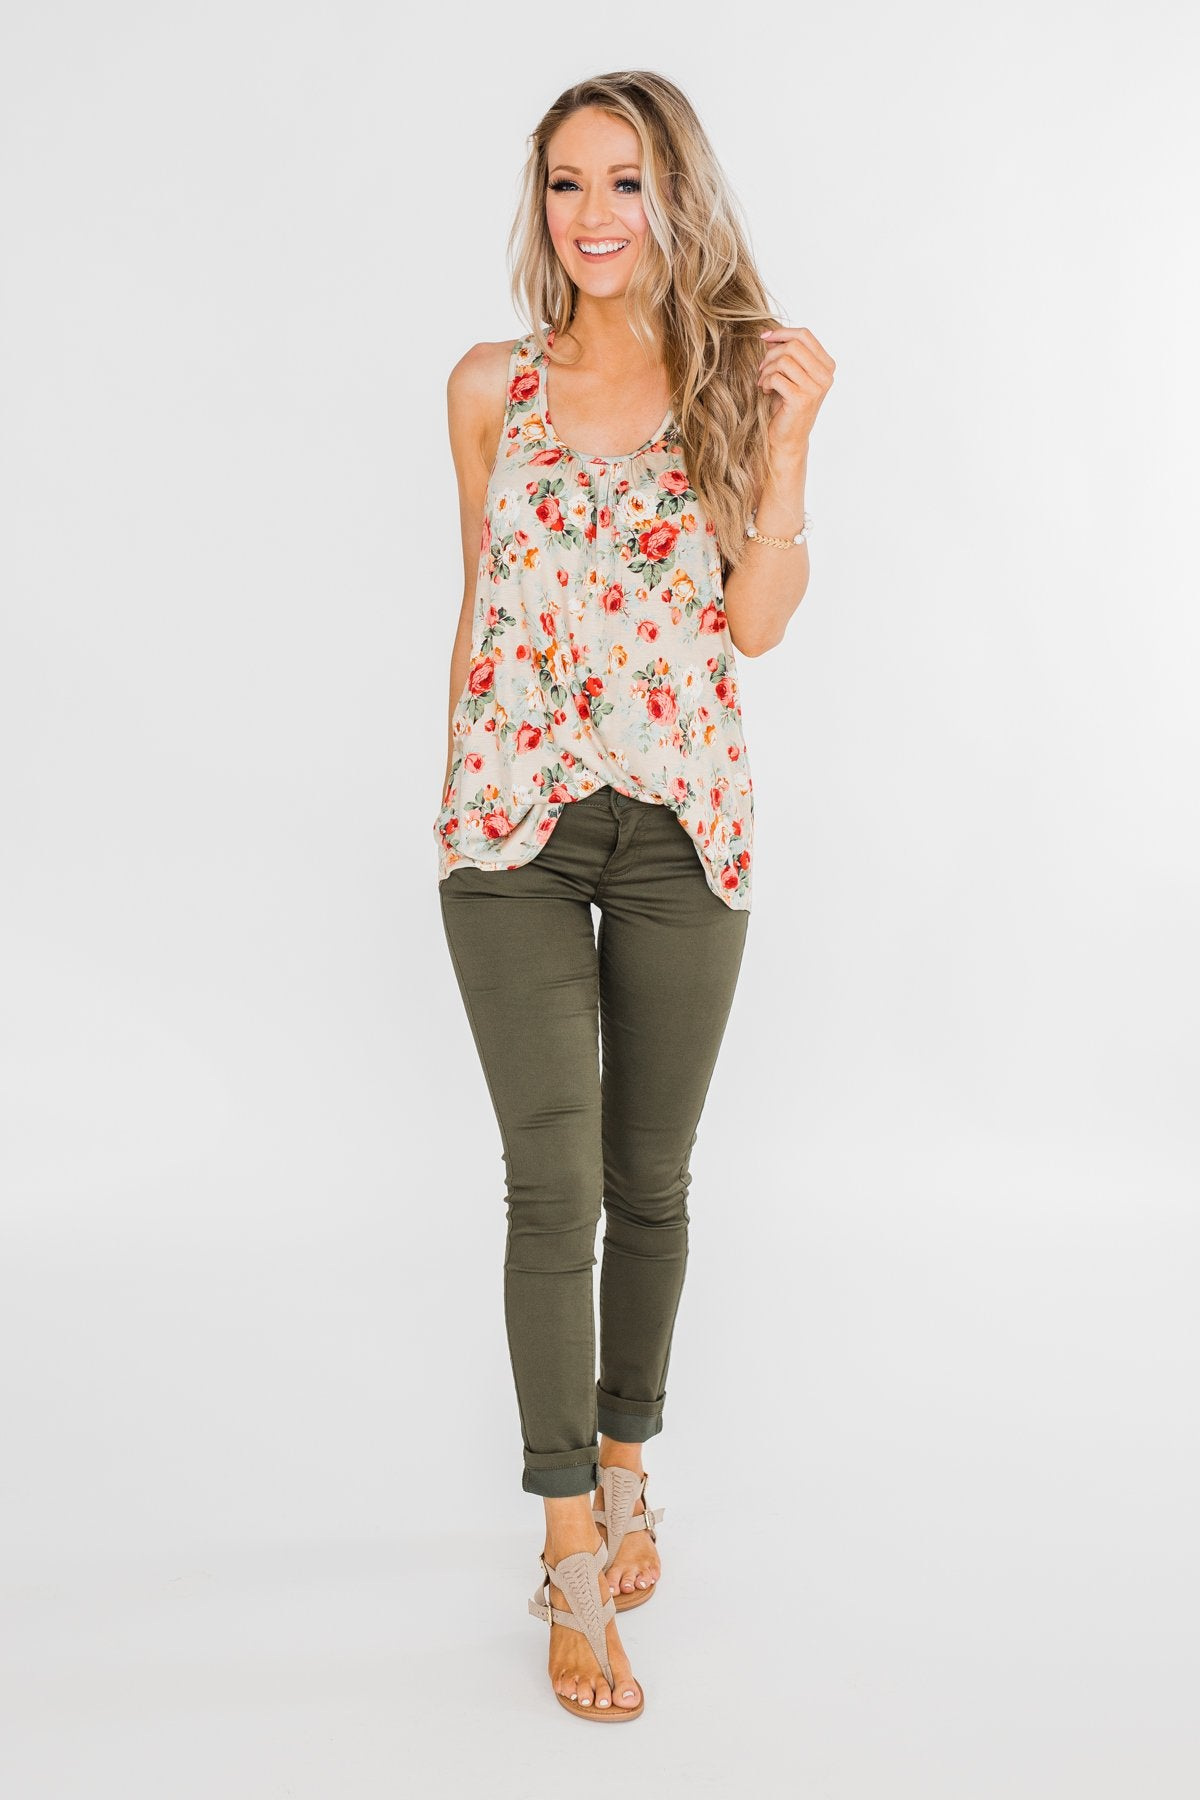 Next to You Floral Tank Top- Light Taupe